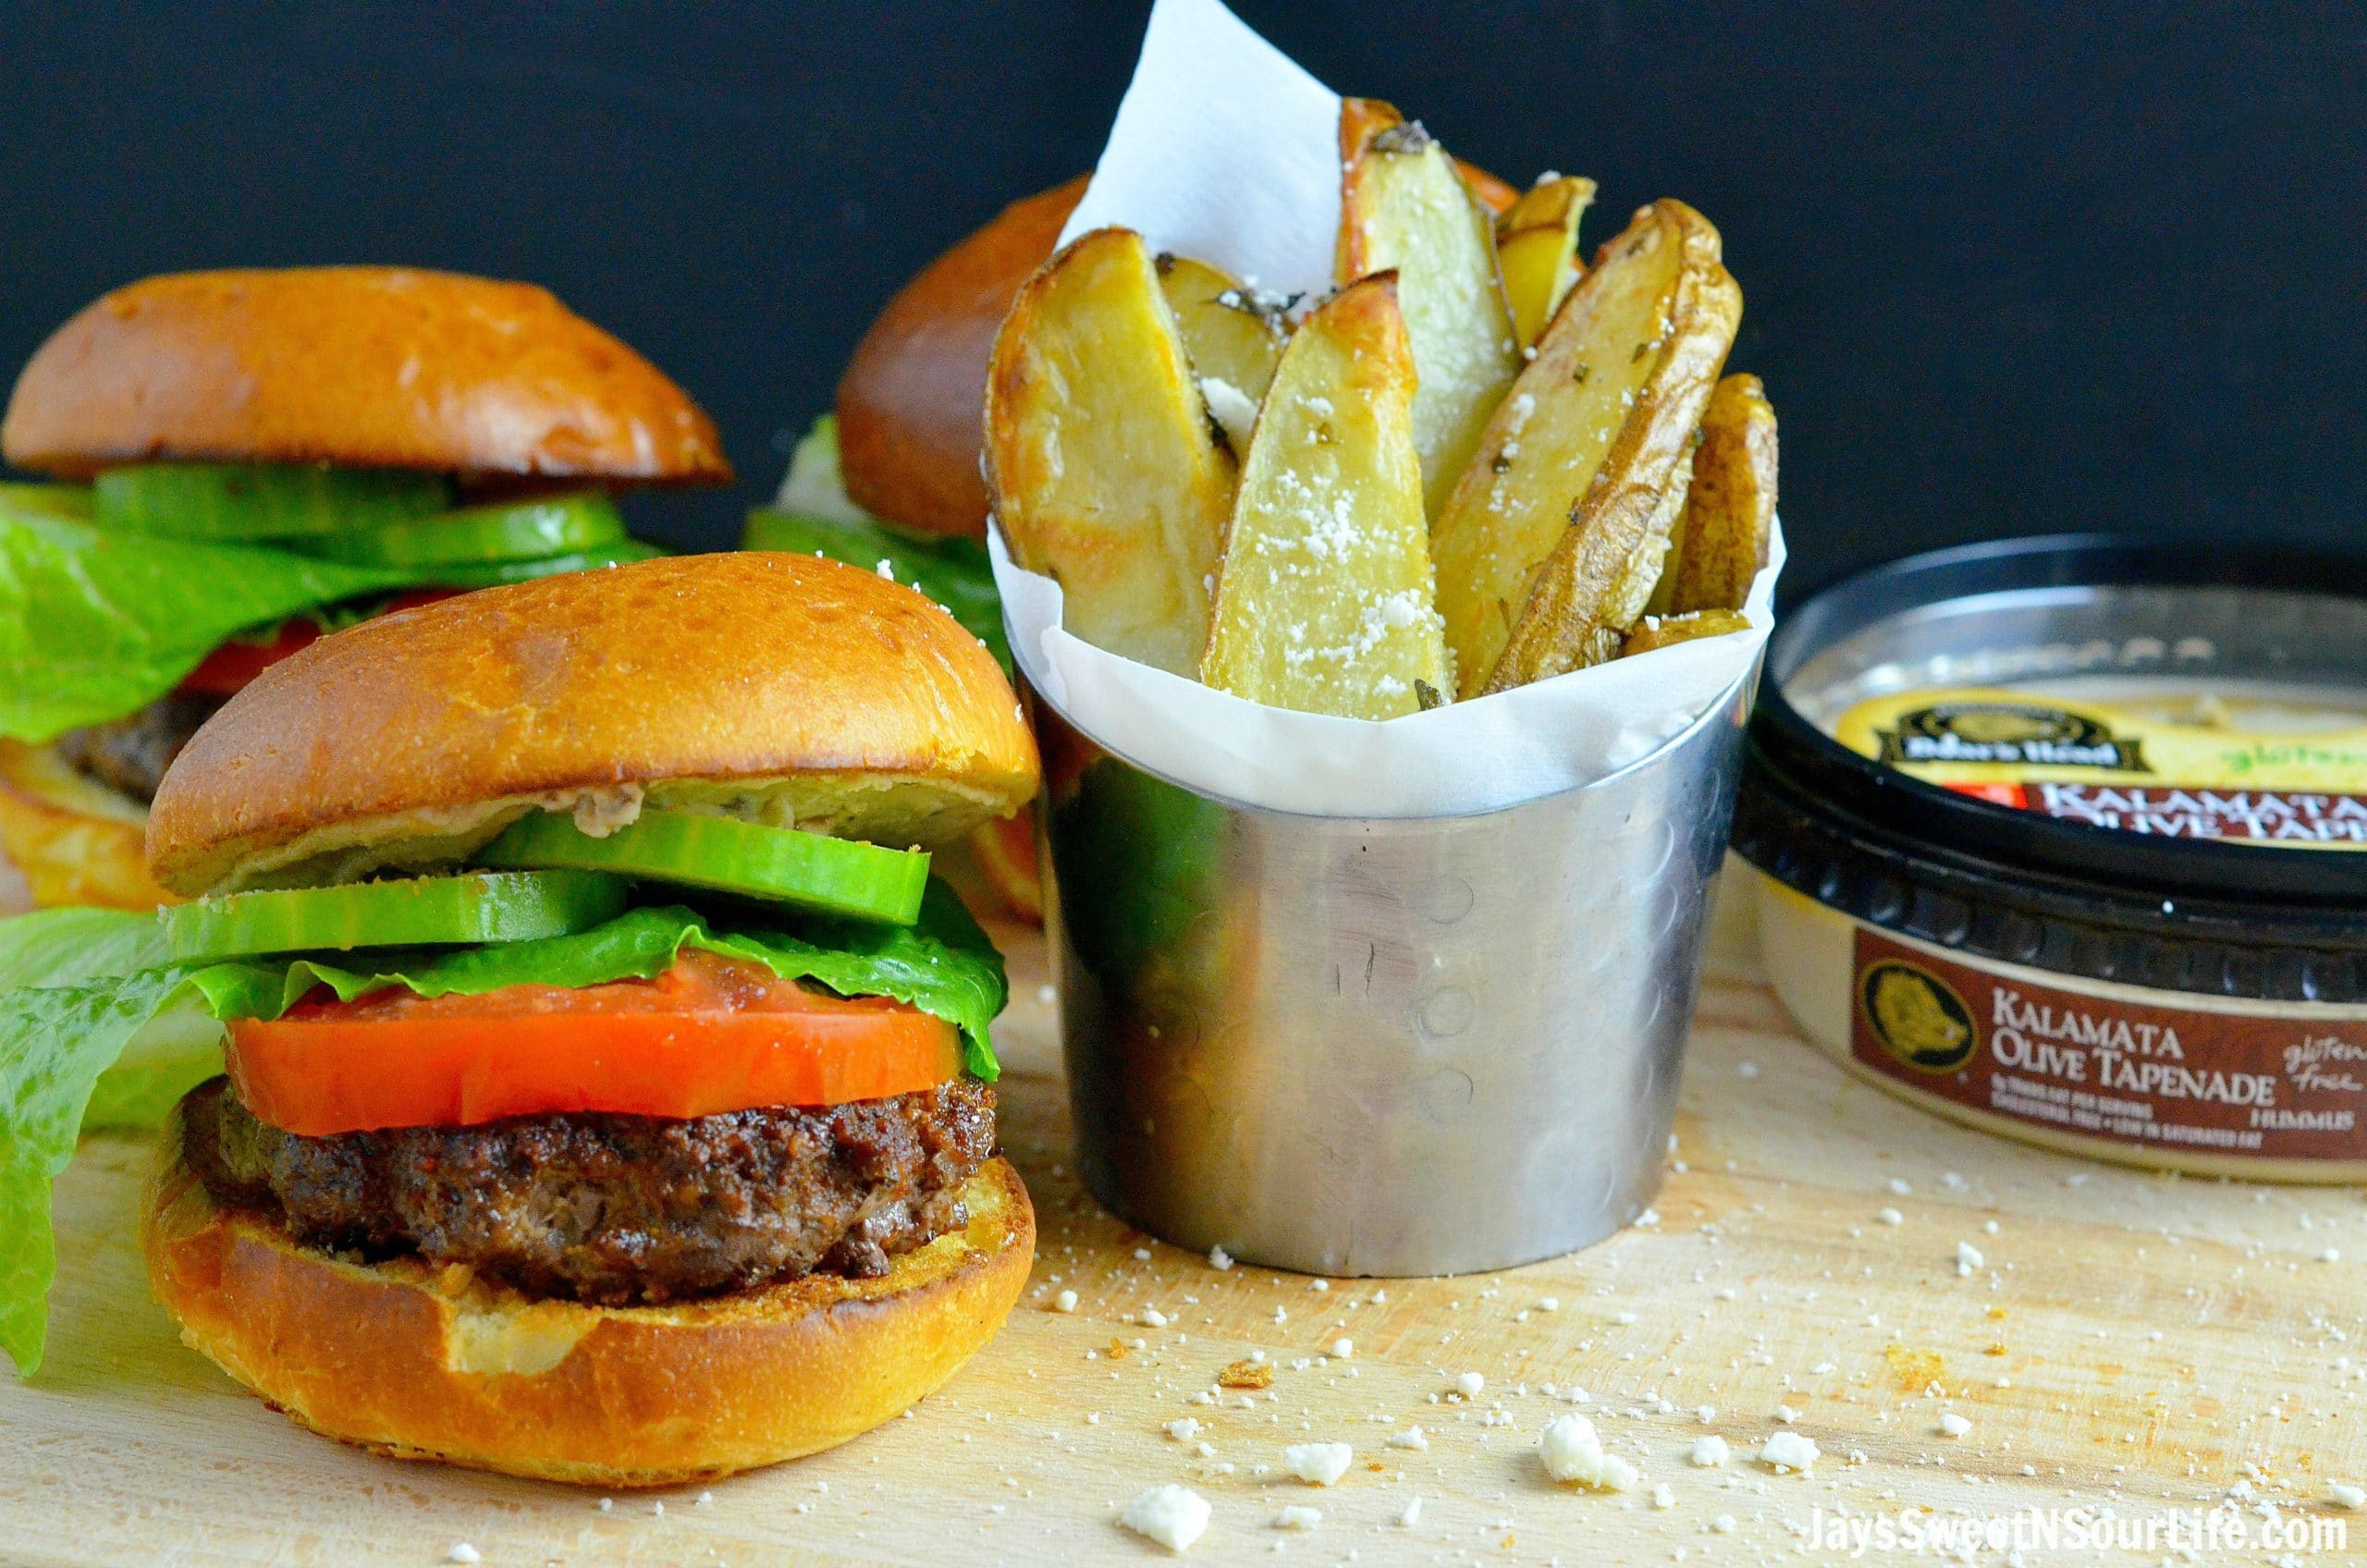 Mediterranean Bison Burger and Fries Table. Deck the halls and your home with the smell of delicious fresh made Mediterranean Bison Burger and fries using Boar's Hummus as a spread.